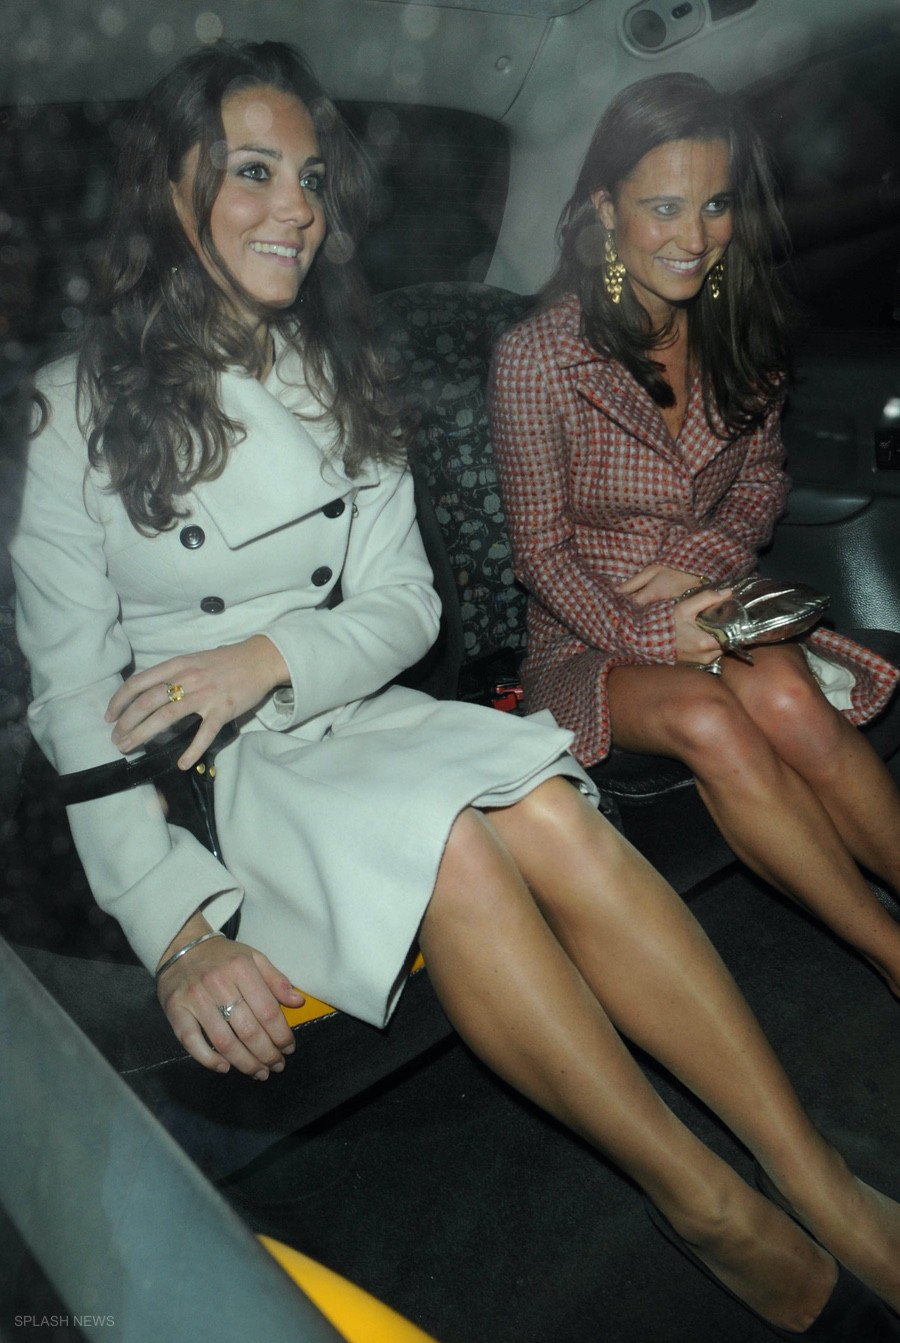 Kate Middleton and Pippa Middleton in 2008